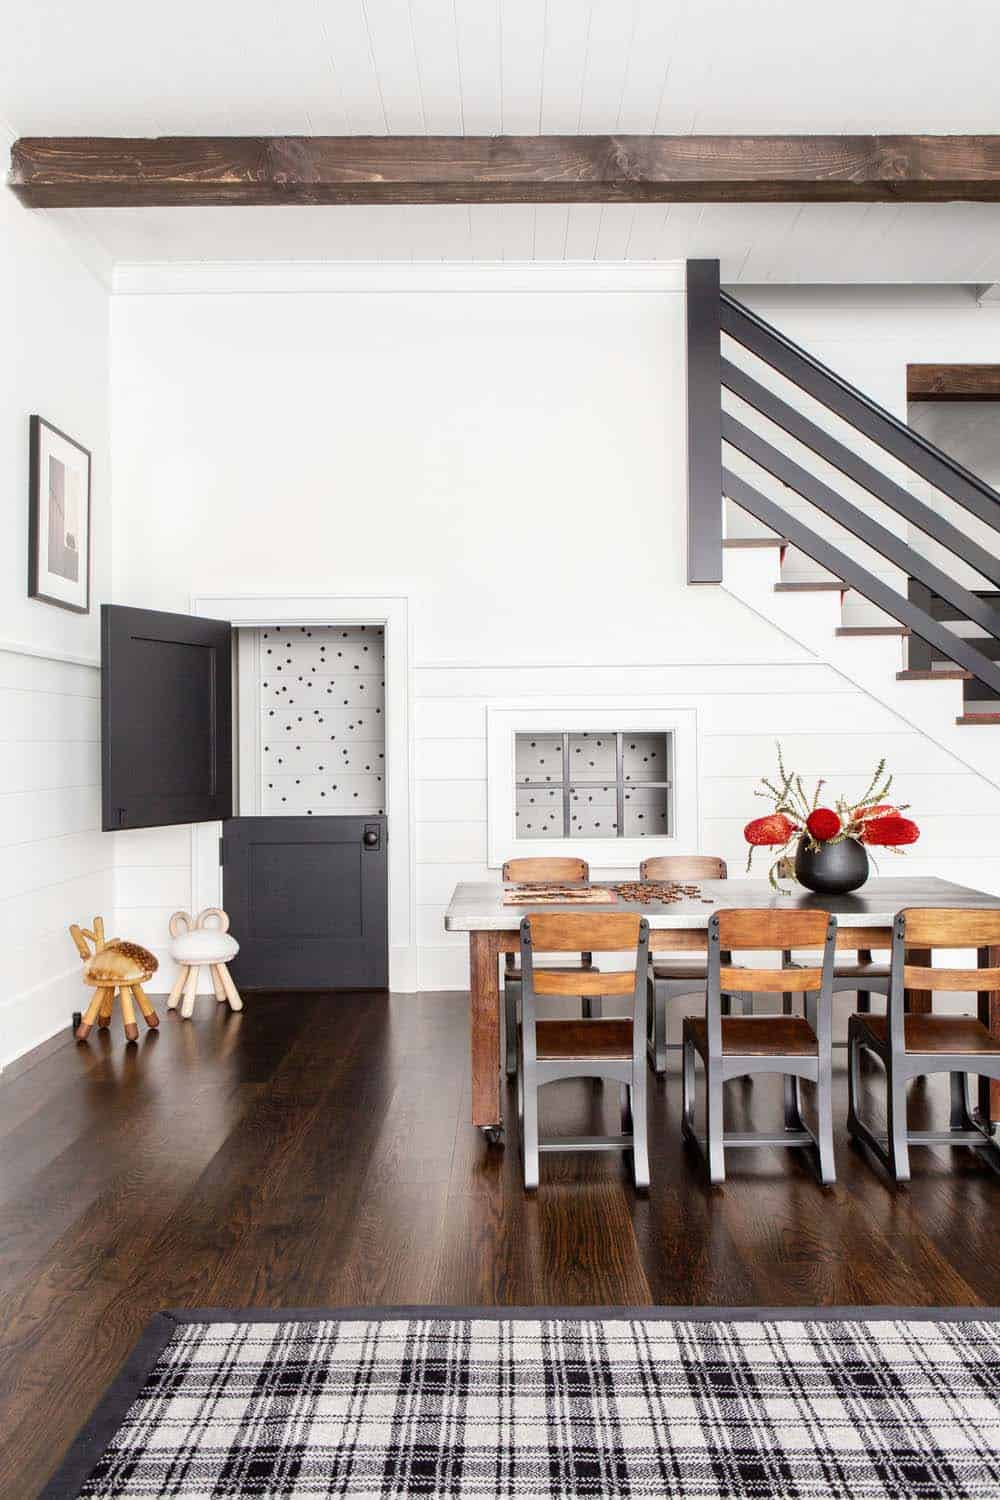 Eclectic Modern Farmhouse With Unexpected Pops Of Color In